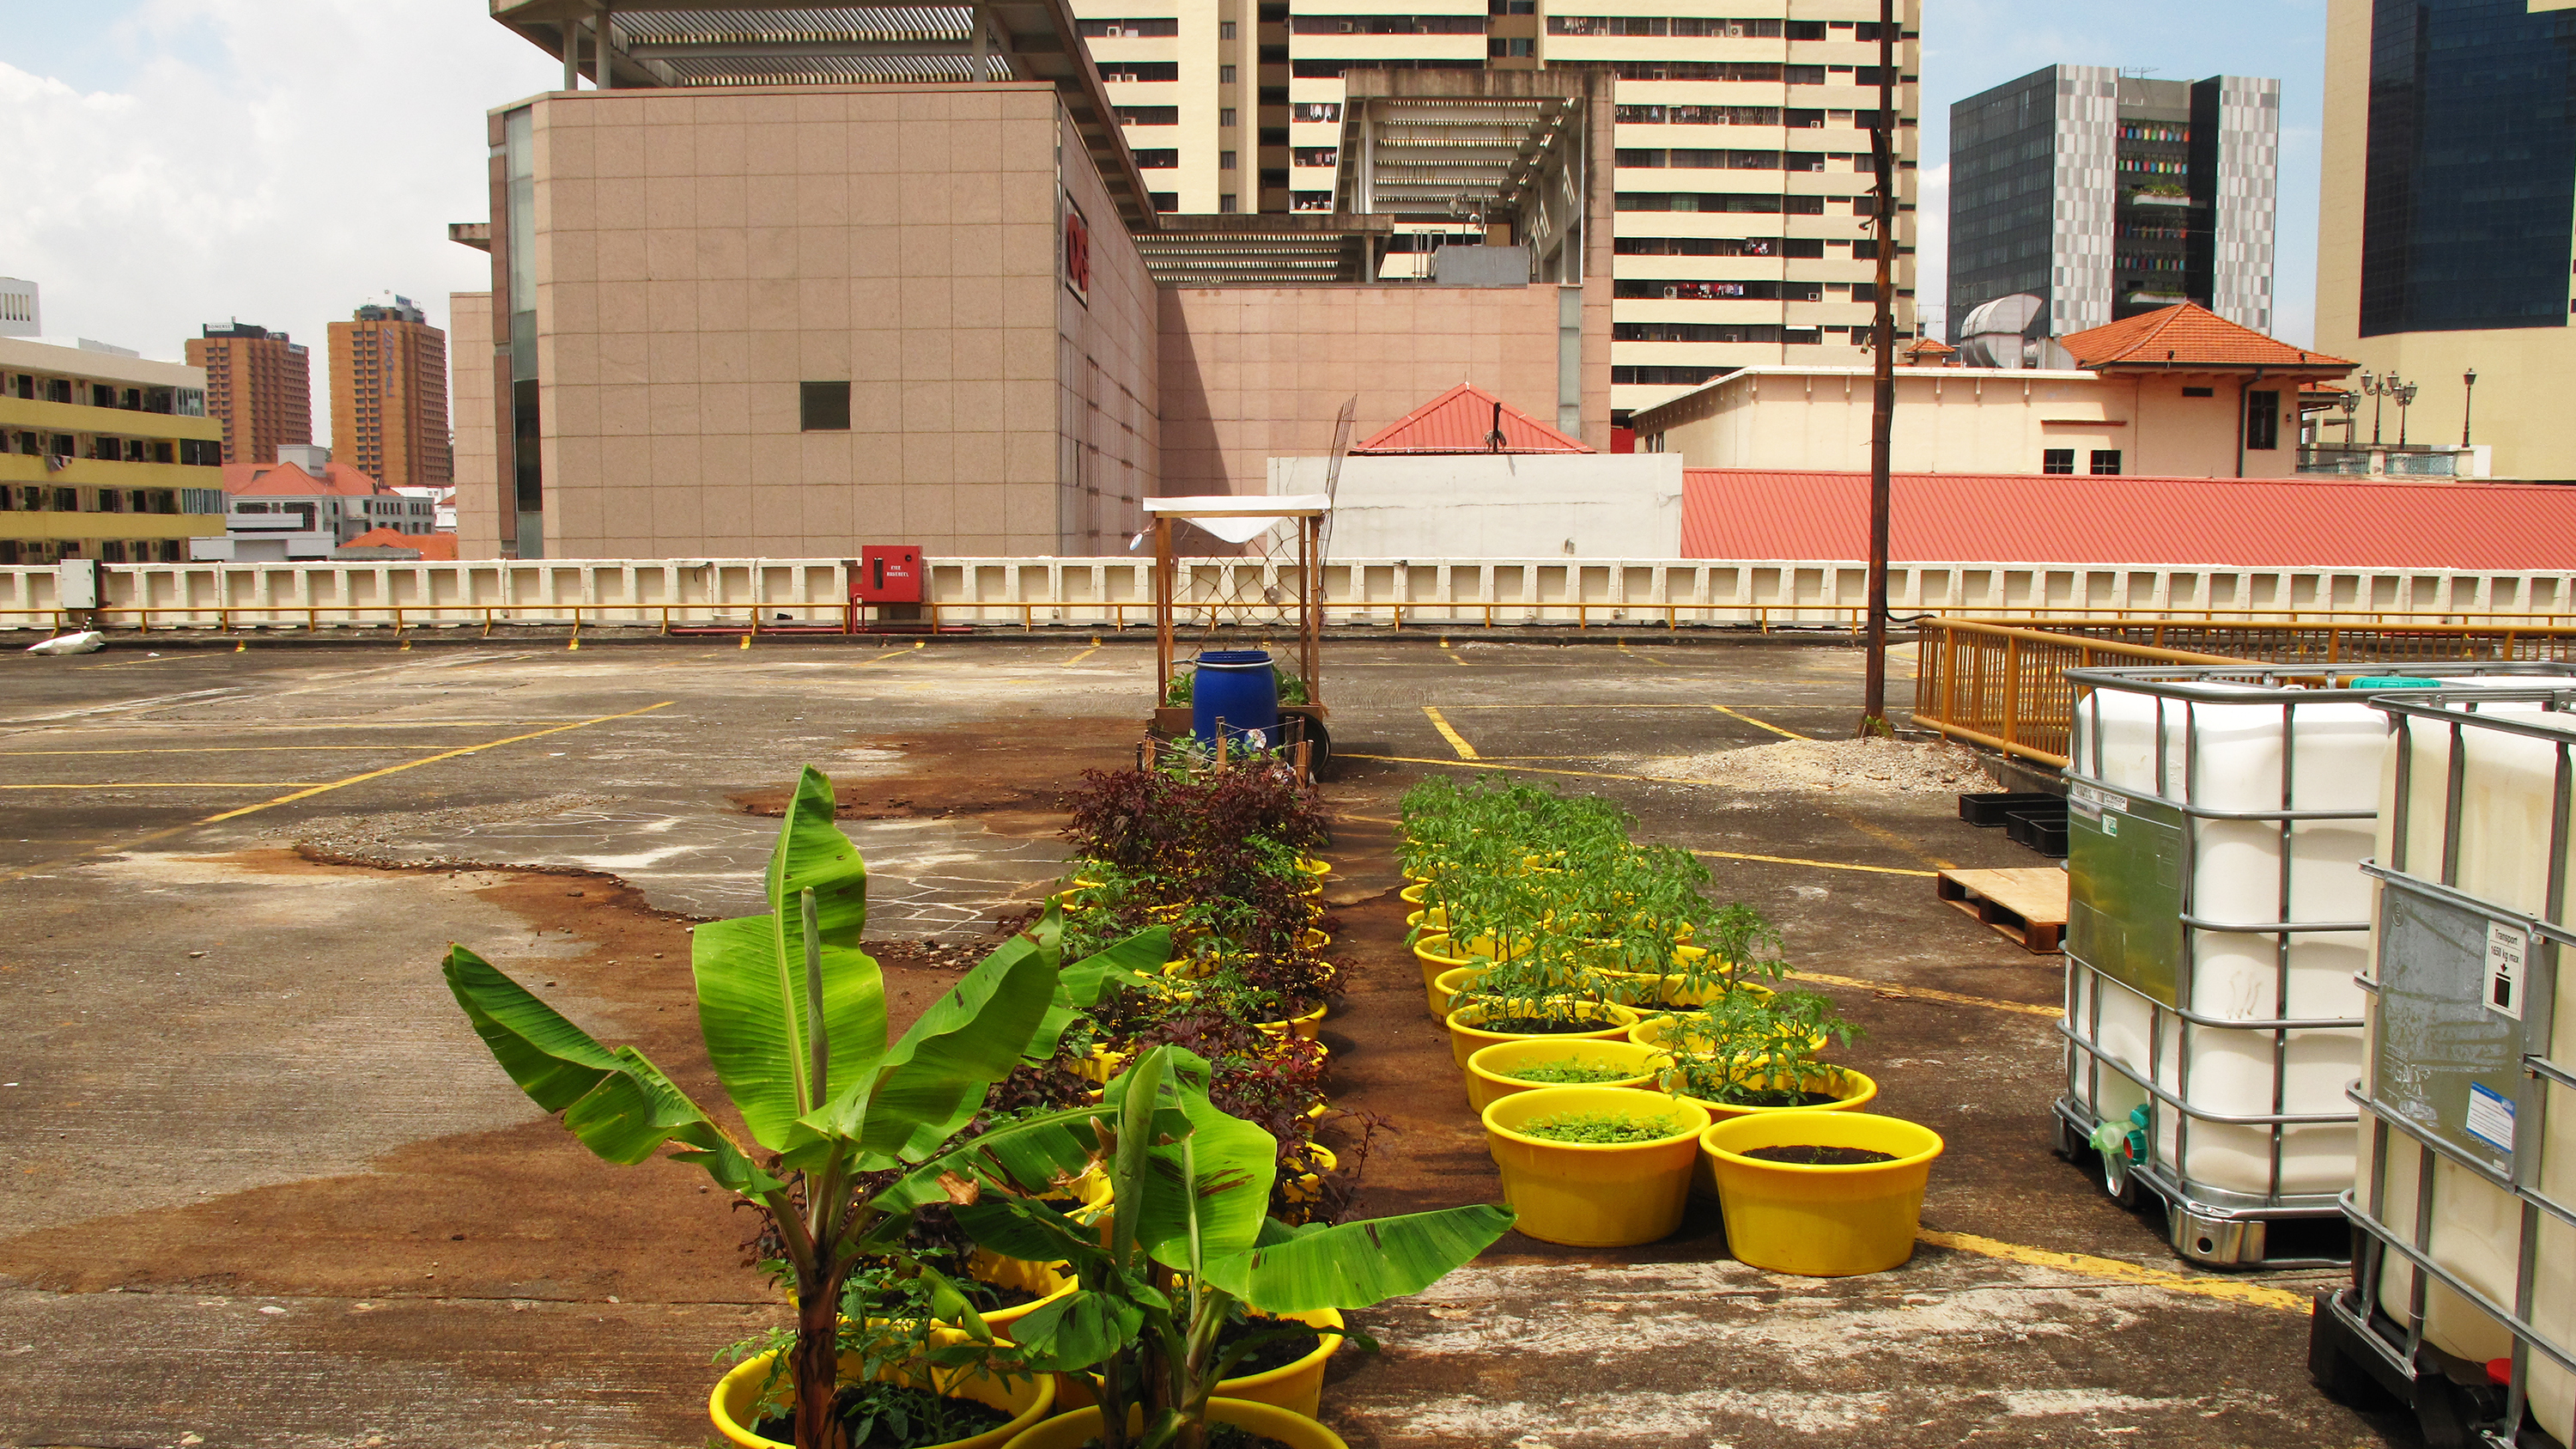 The top floor of the People's Park Complex garage is home to the Edible Gardens showcase -- where the company grows herbs, sells supplies, holds classes and presents lectures on urban and sustainable farming techniques.